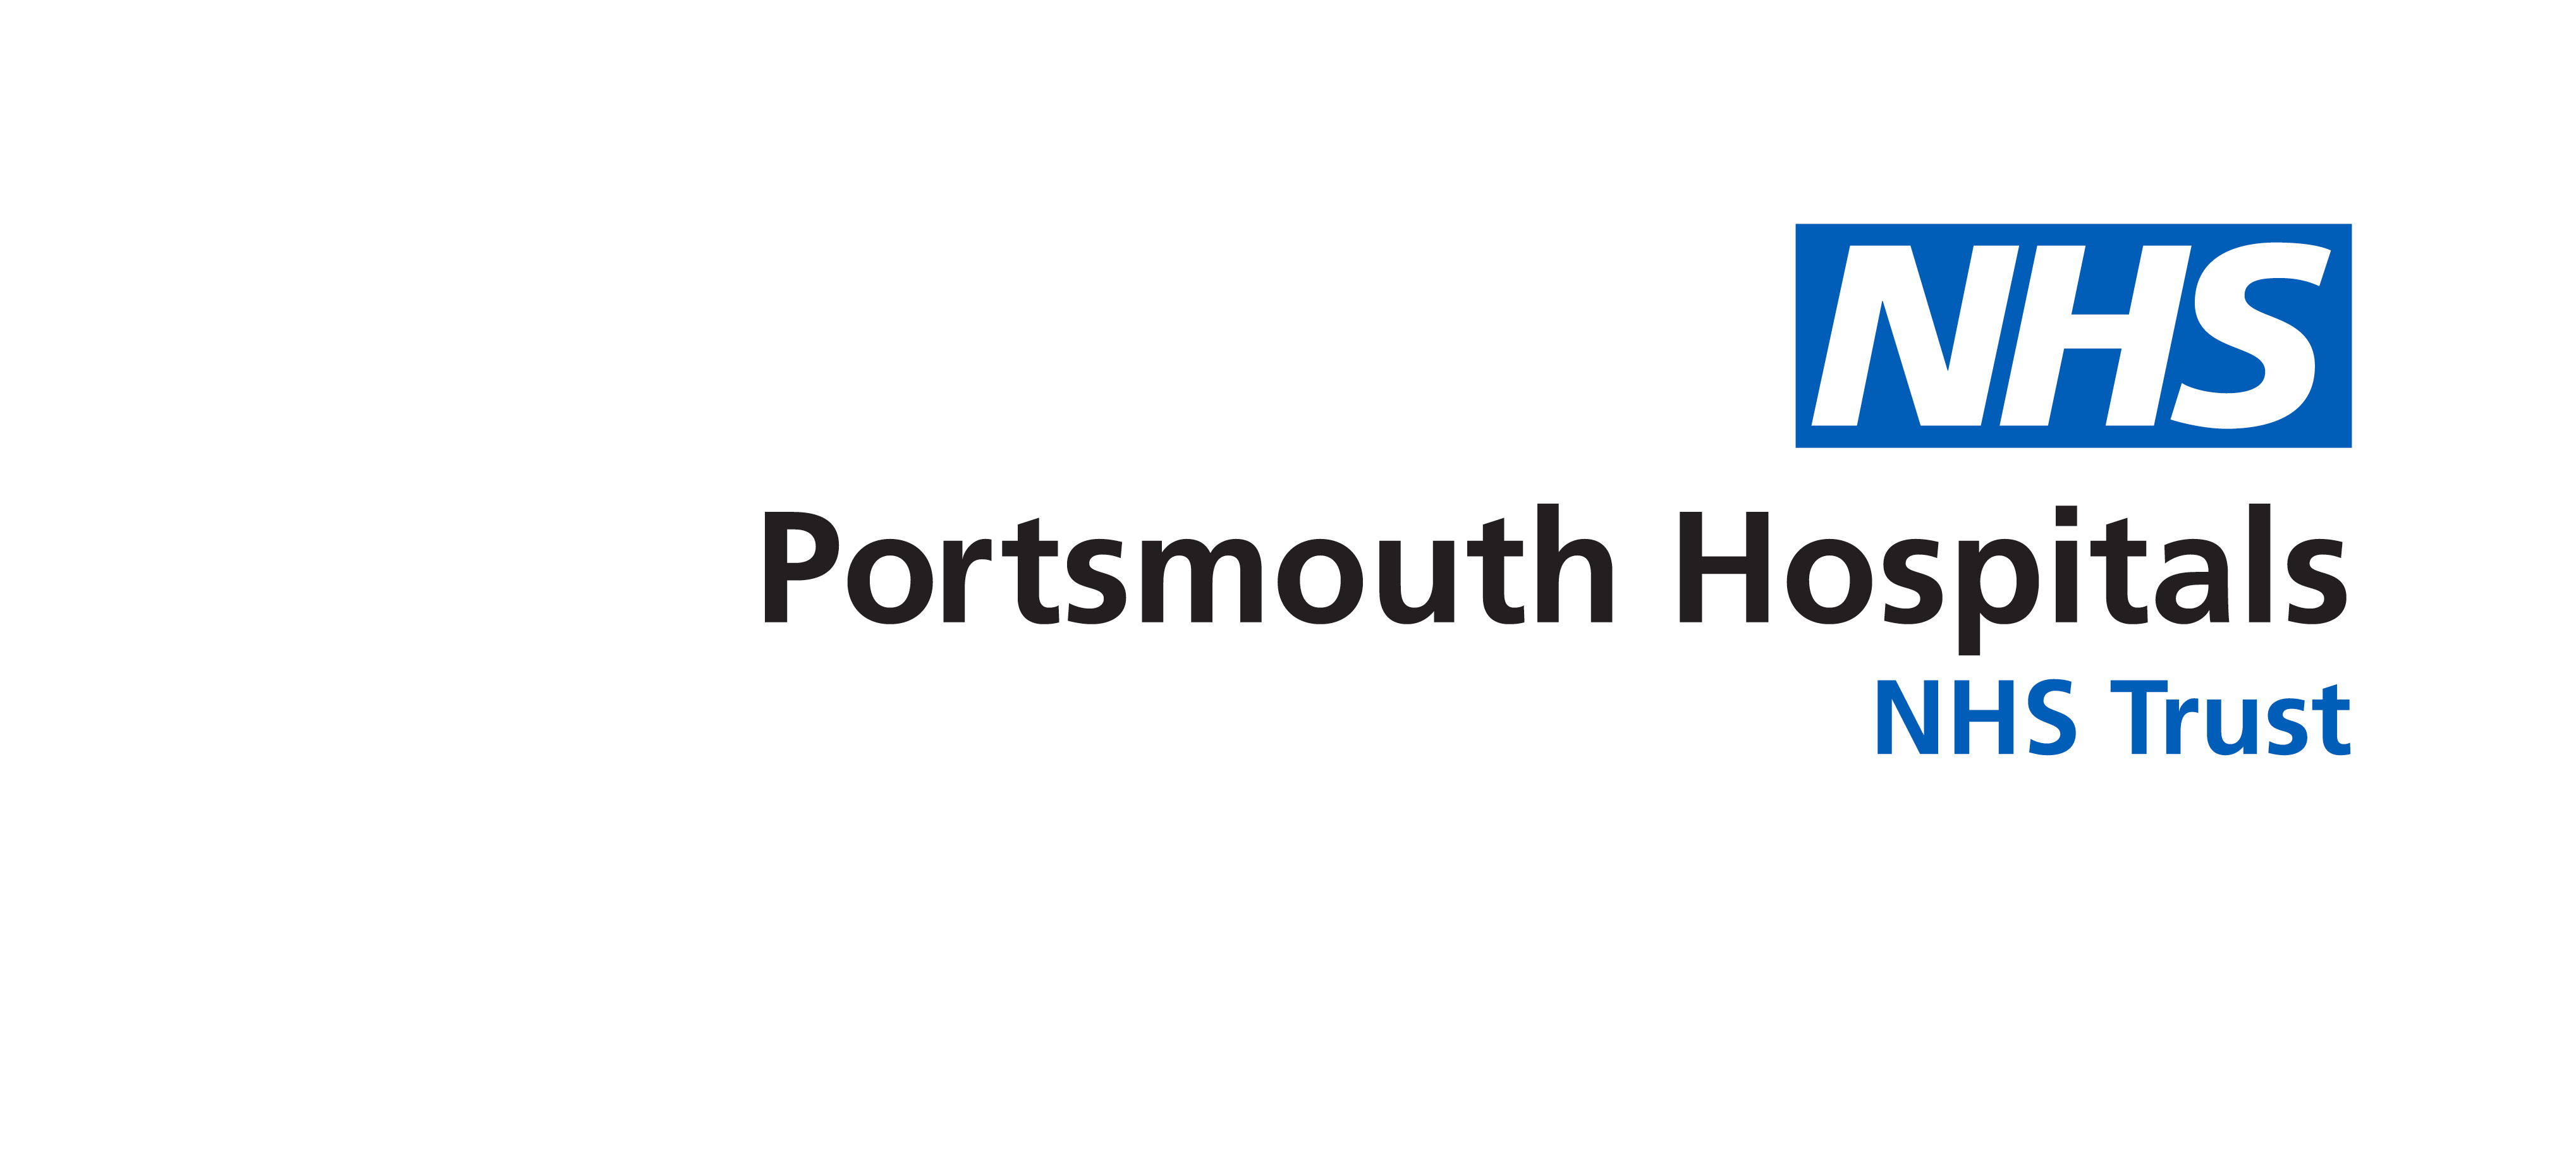 Portsmouth Hospitals NHS Trust urges community to get flu jab ahead of Christmas